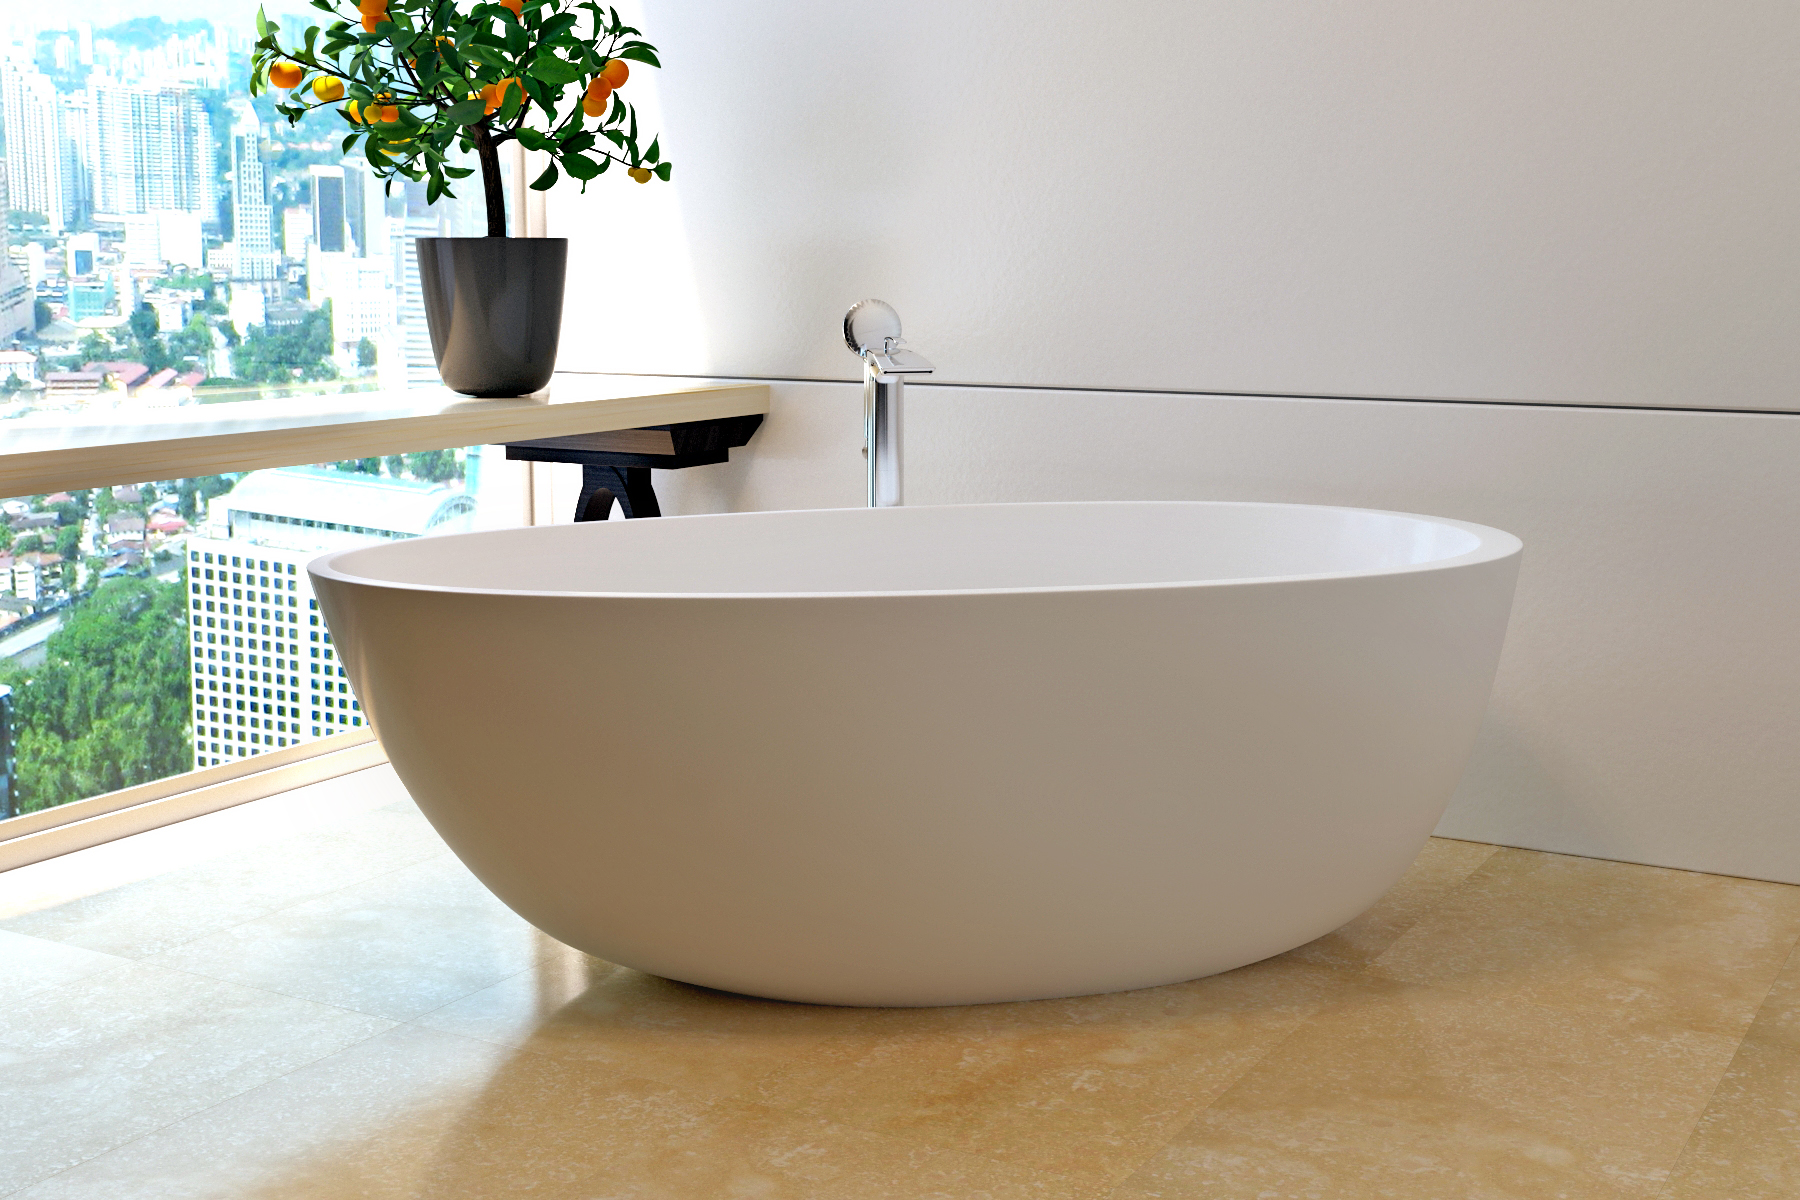 Aquatica Spoon 2 Purescape 204AM Egg Shaped Freestanding Solid Surface Bathtub